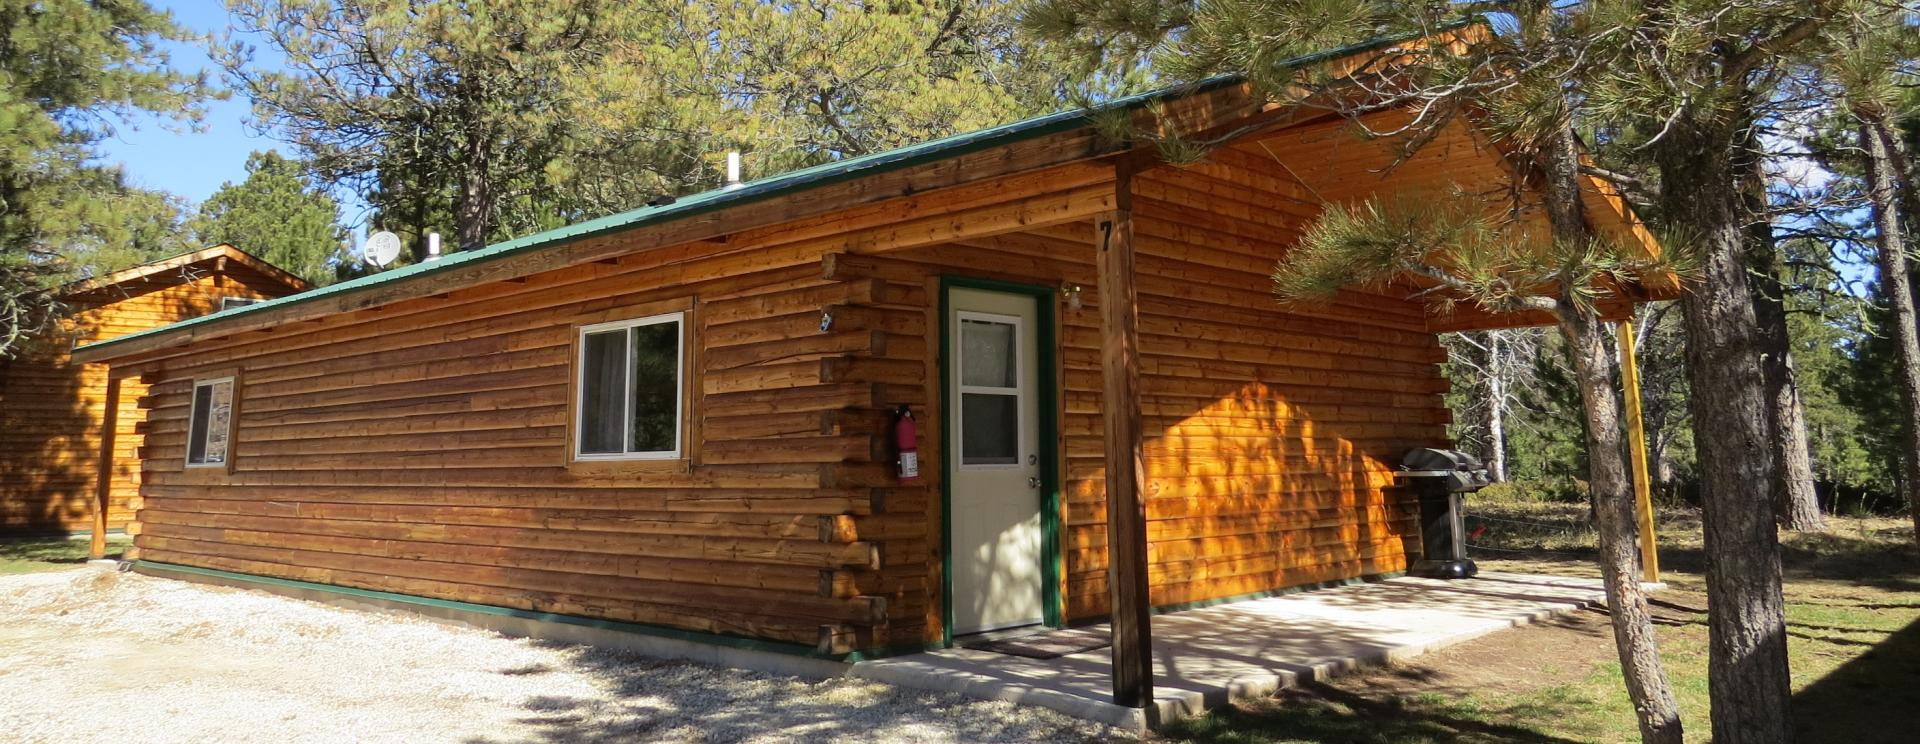 Mystic Hills Hideaway Campground & Cabins